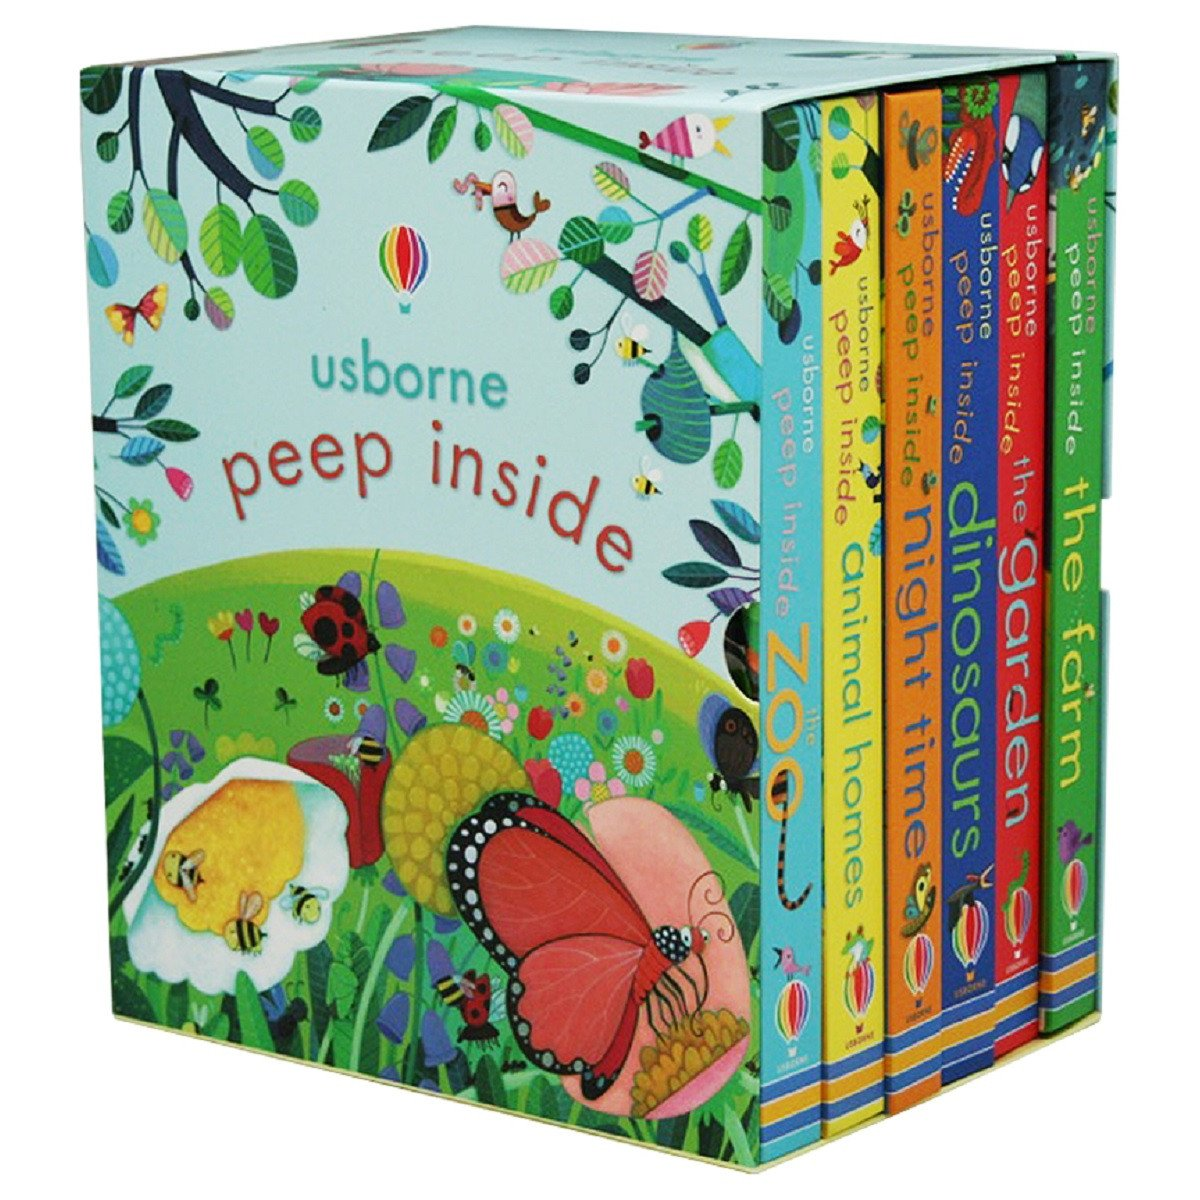 Usborne Peep Inside Box Set by Not Known, ISBN: 9781474927314